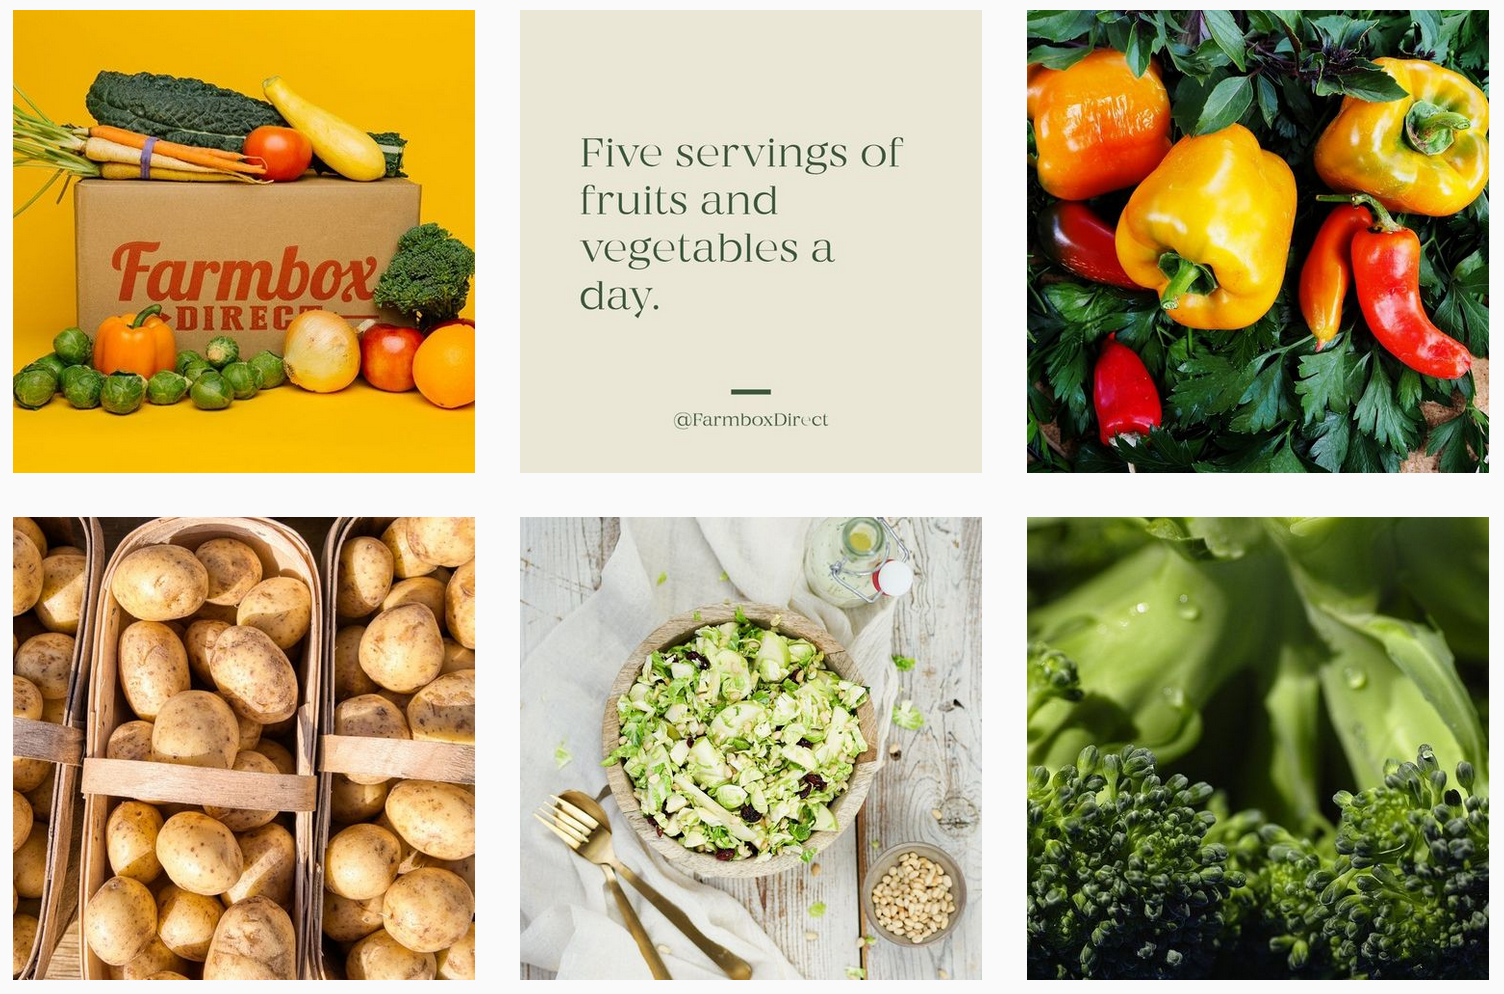 Farmbox Direct | Health Brands Featured on Afluencer